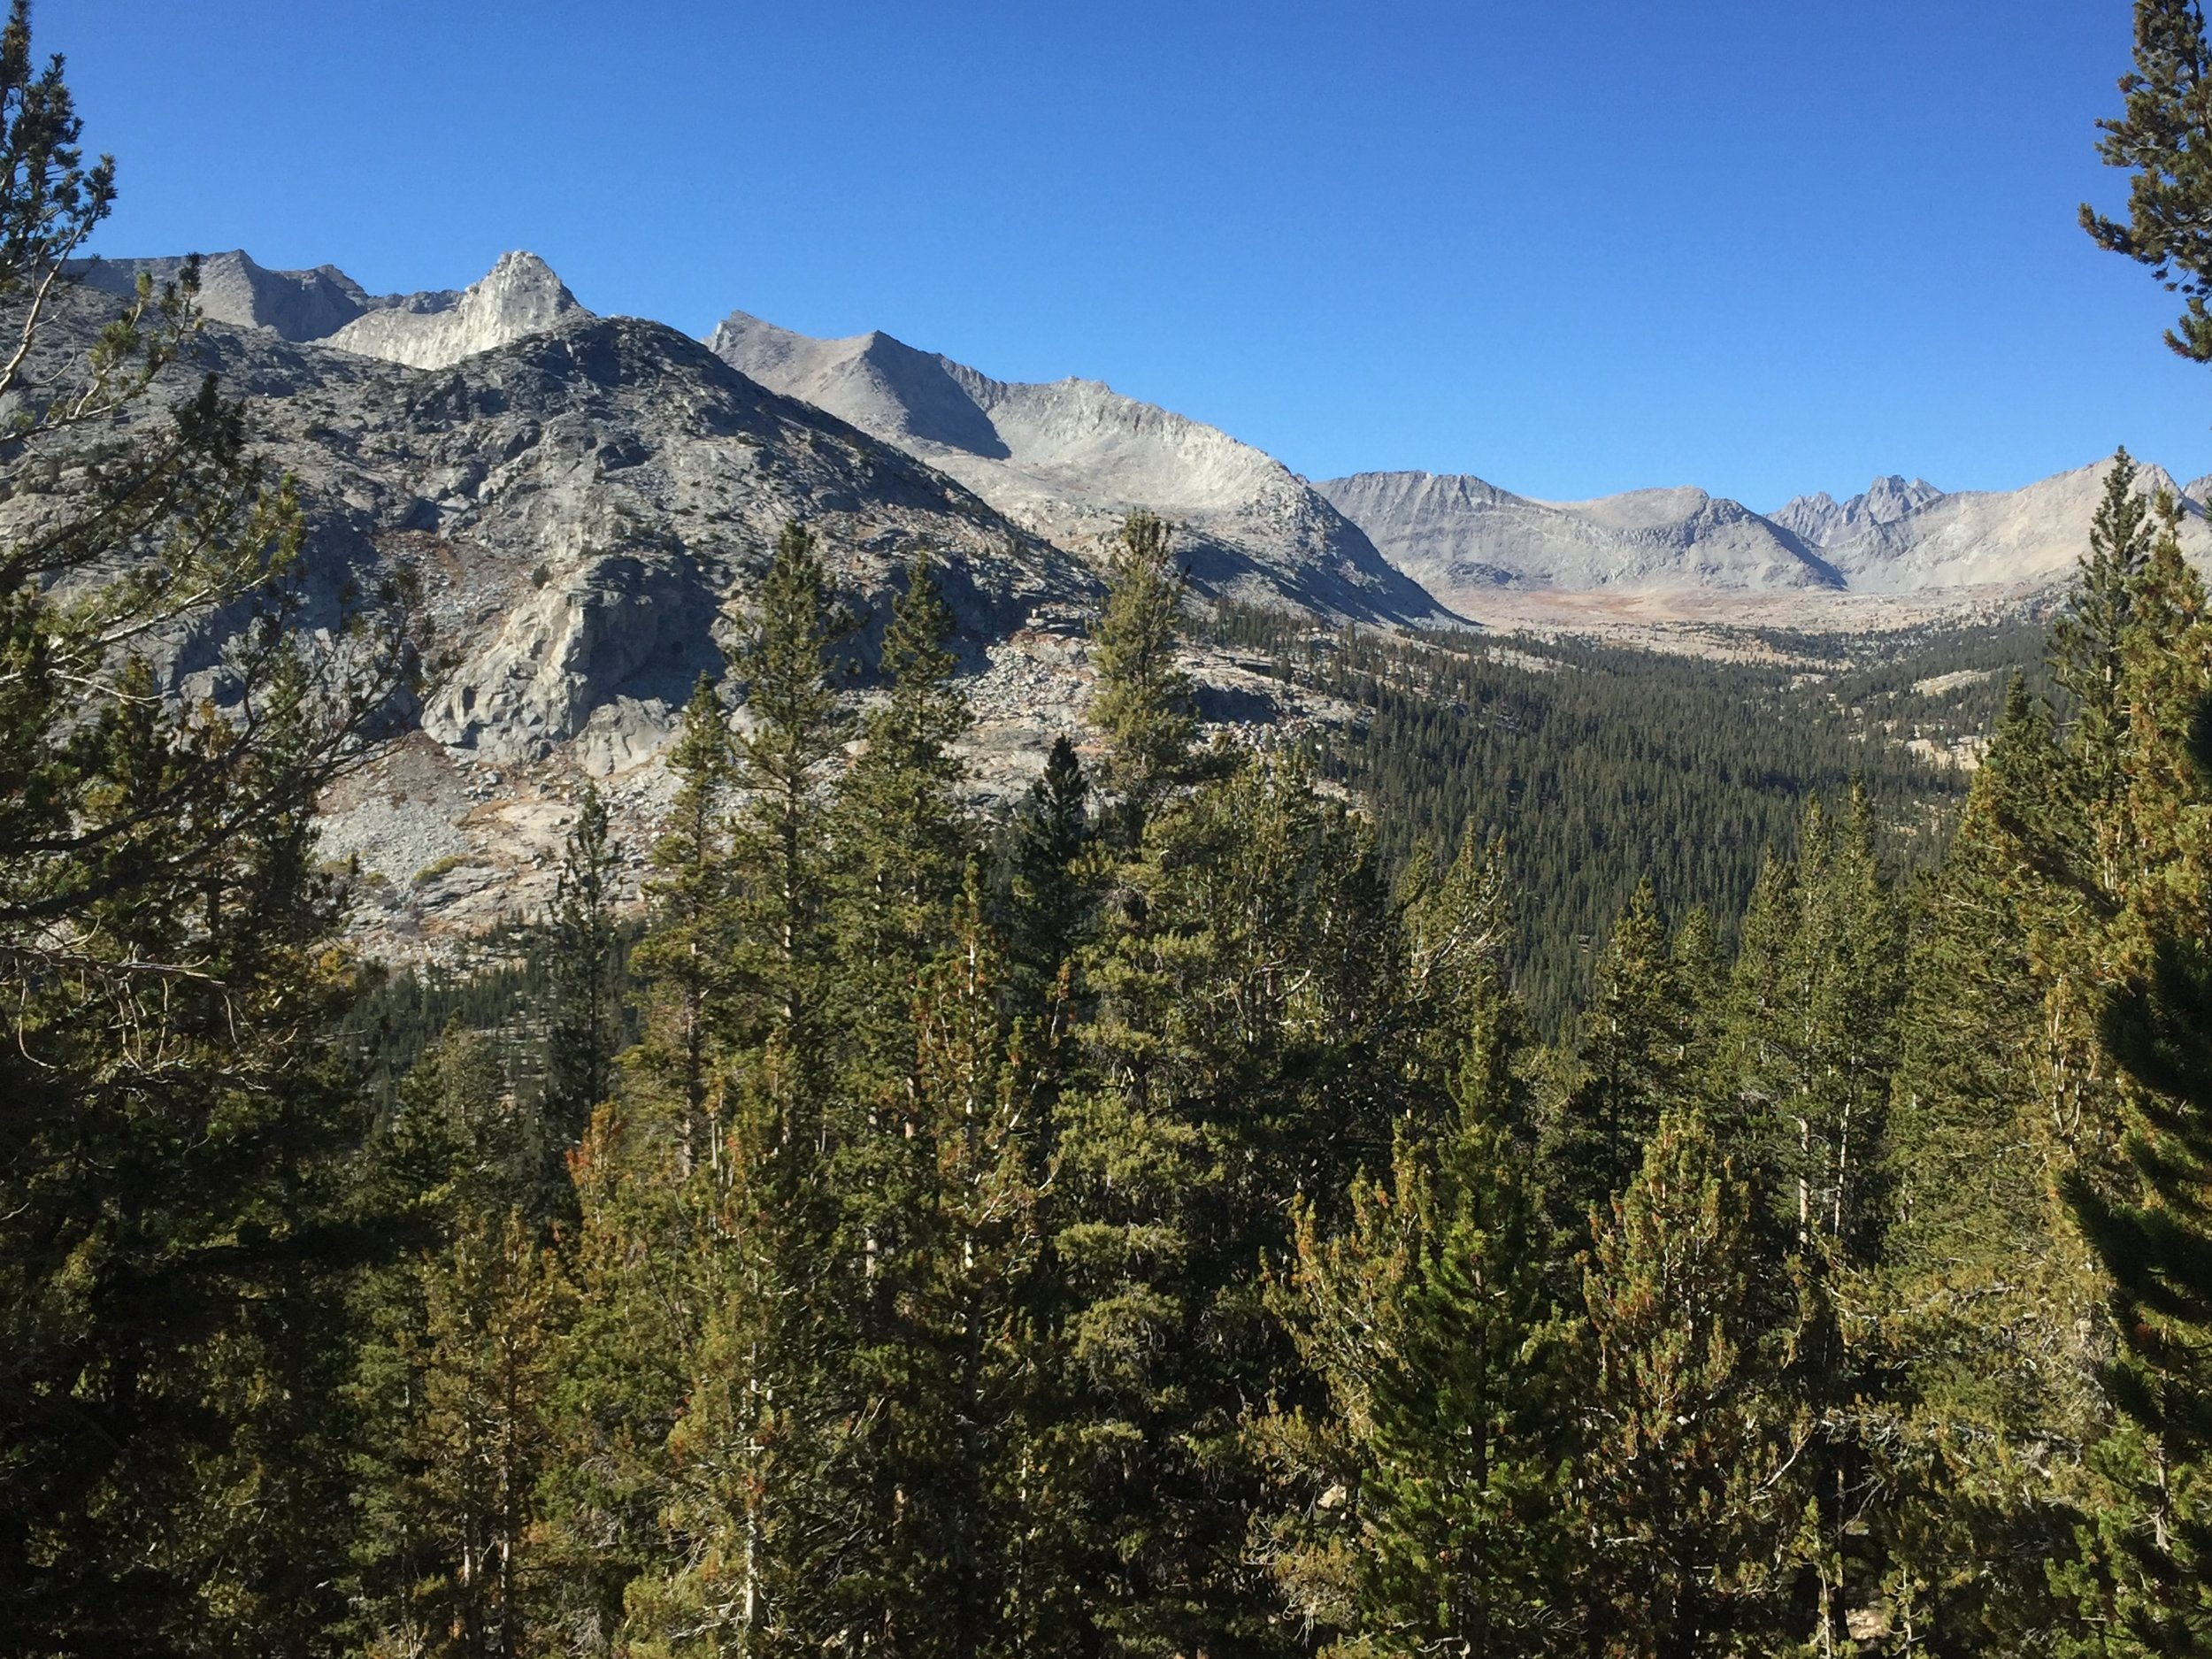 The peaks of Lake Basin (L), golden and treeless Upper Basin (R mid-field), and Mather Pass from the south with the Palisade Crest visible beyond (R above Upper Basin). Taken from the climb away from the South Fork Kings River